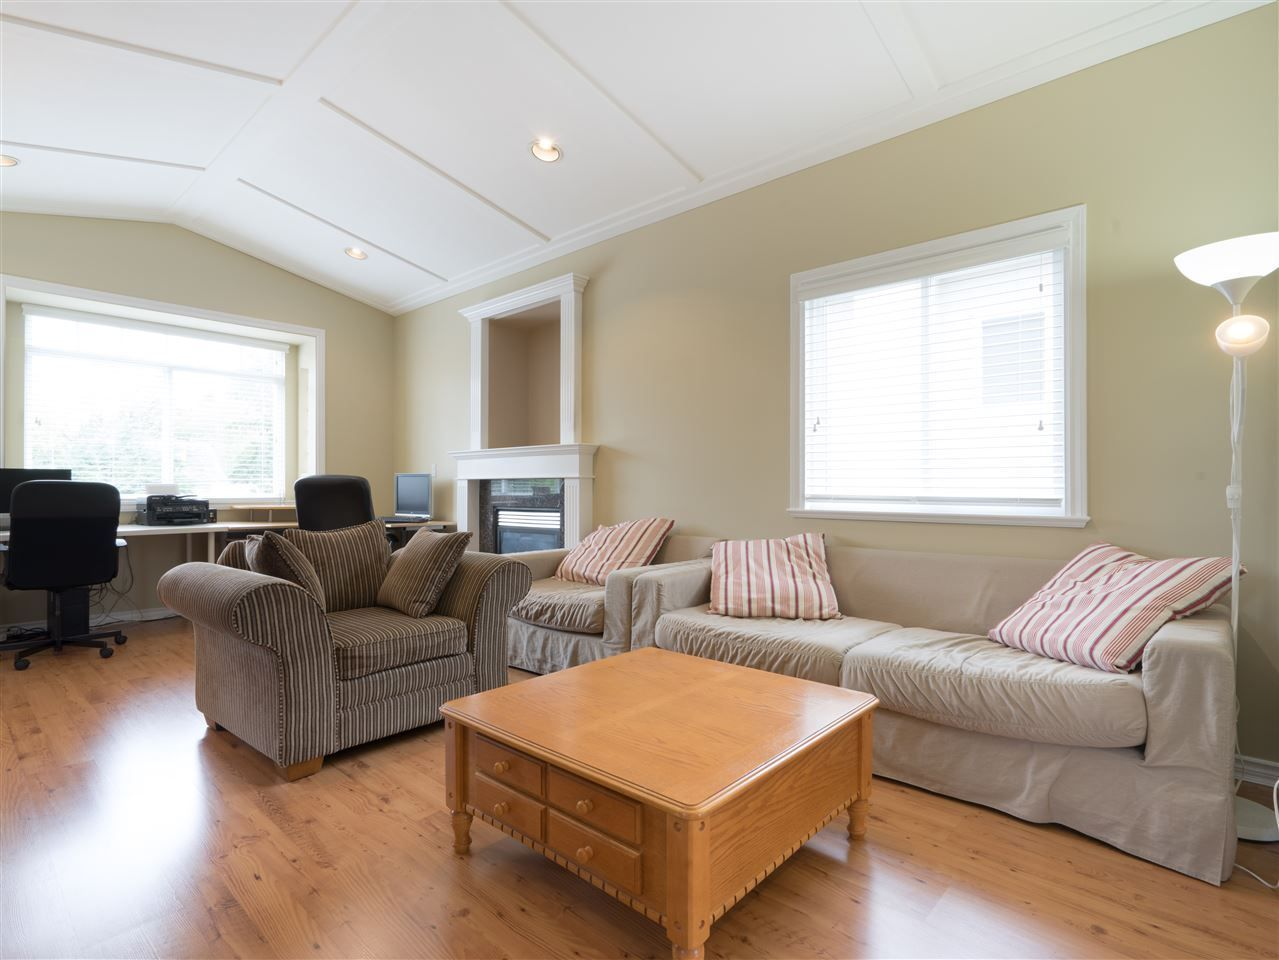 Photo 5: Photos: 2052 WESTVIEW Drive in North Vancouver: Central Lonsdale House for sale : MLS®# R2530544